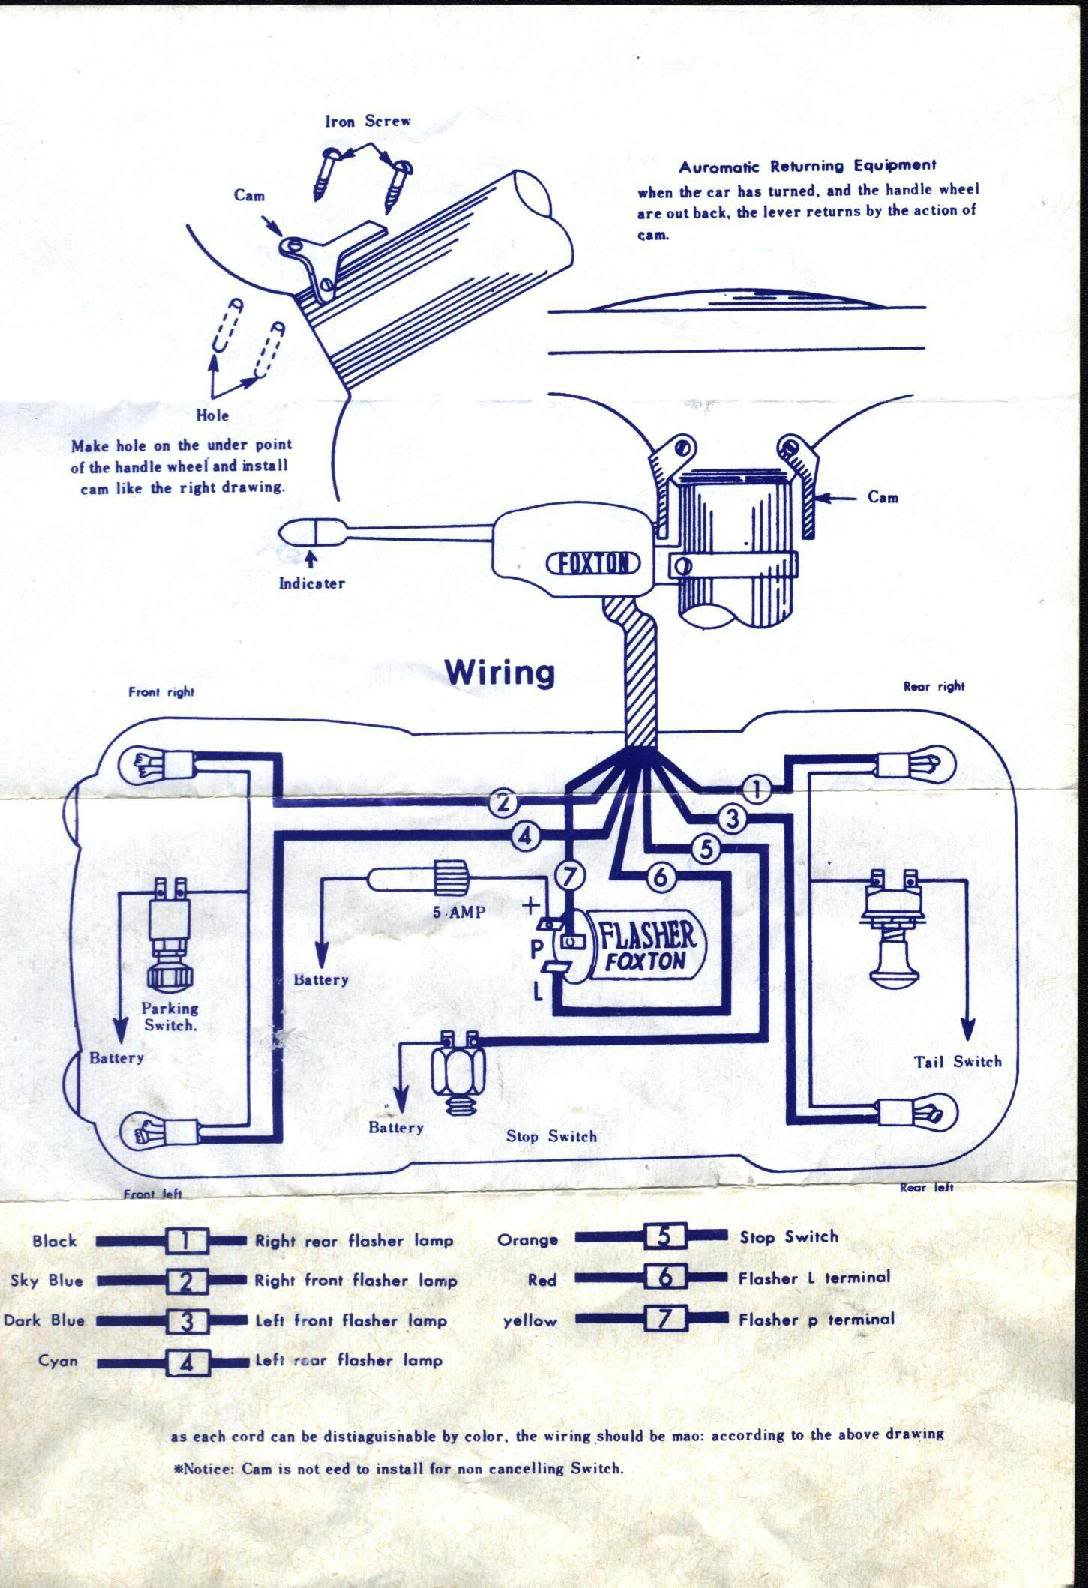 turn signal flasher wiring diagram wiring diagram and hernes chevy turn signal wiring diagram for 38 diagrams